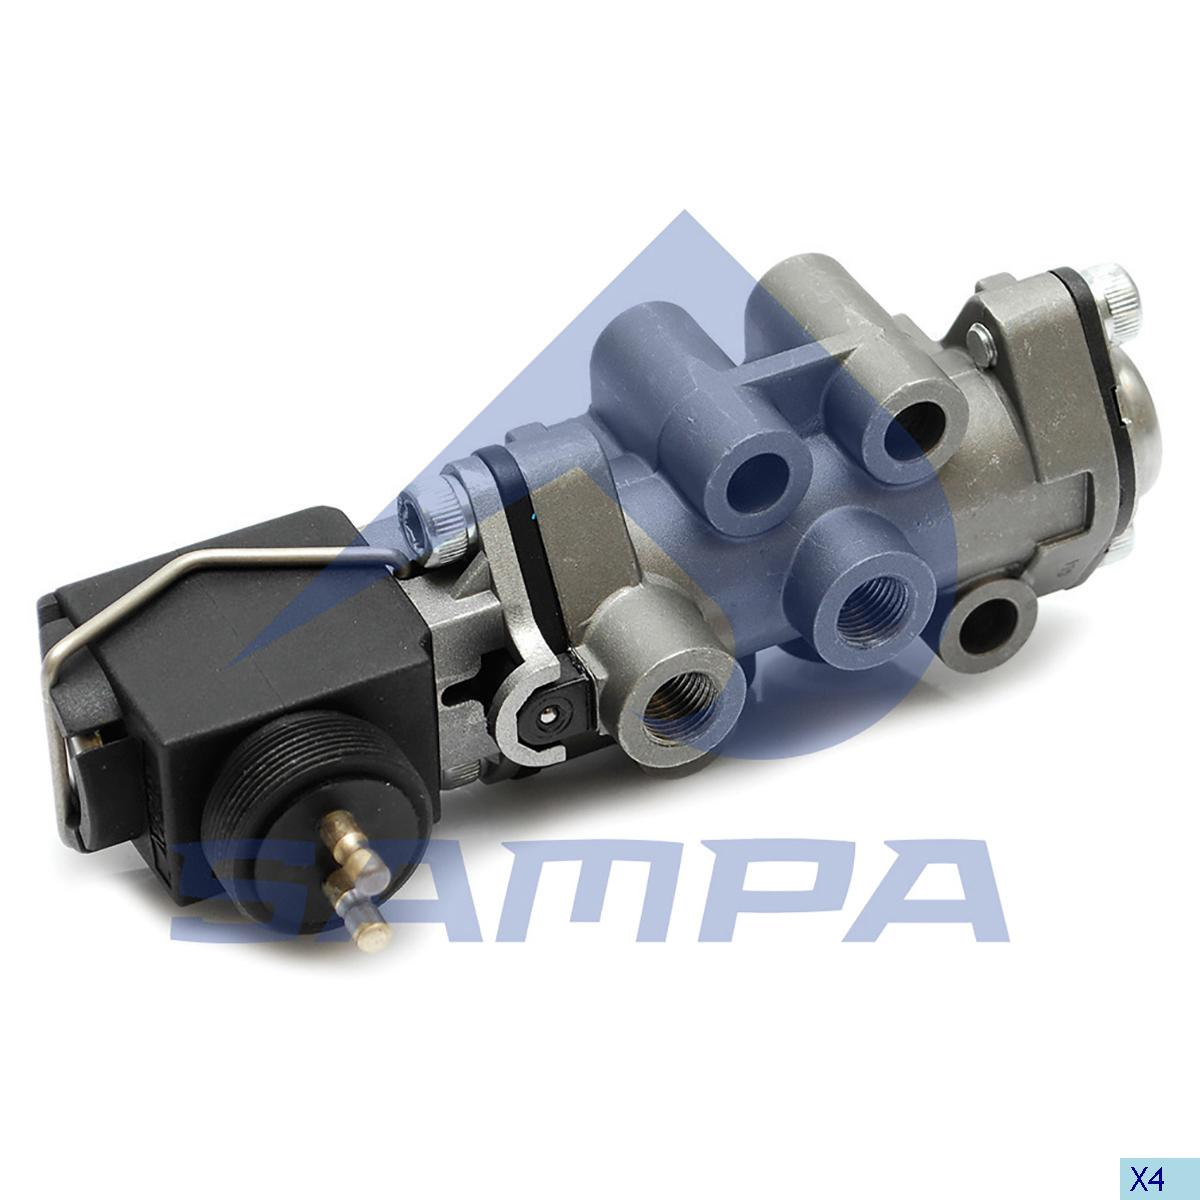 Valve, Gear Box Housing, Scania, Gear Box